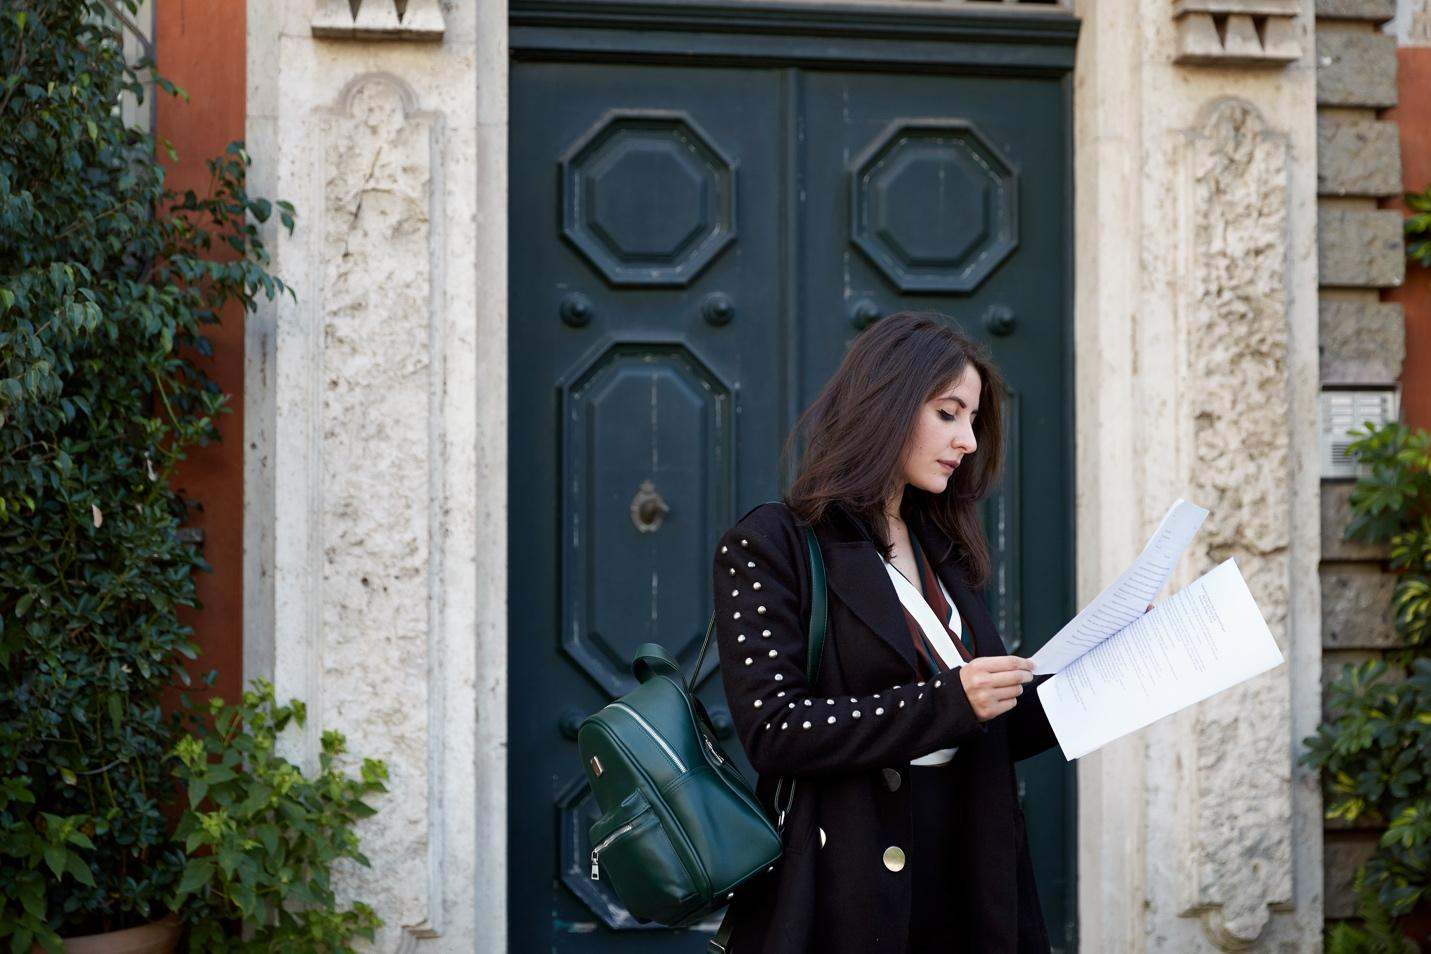 Fashionable students reading notes in the streets of Rome